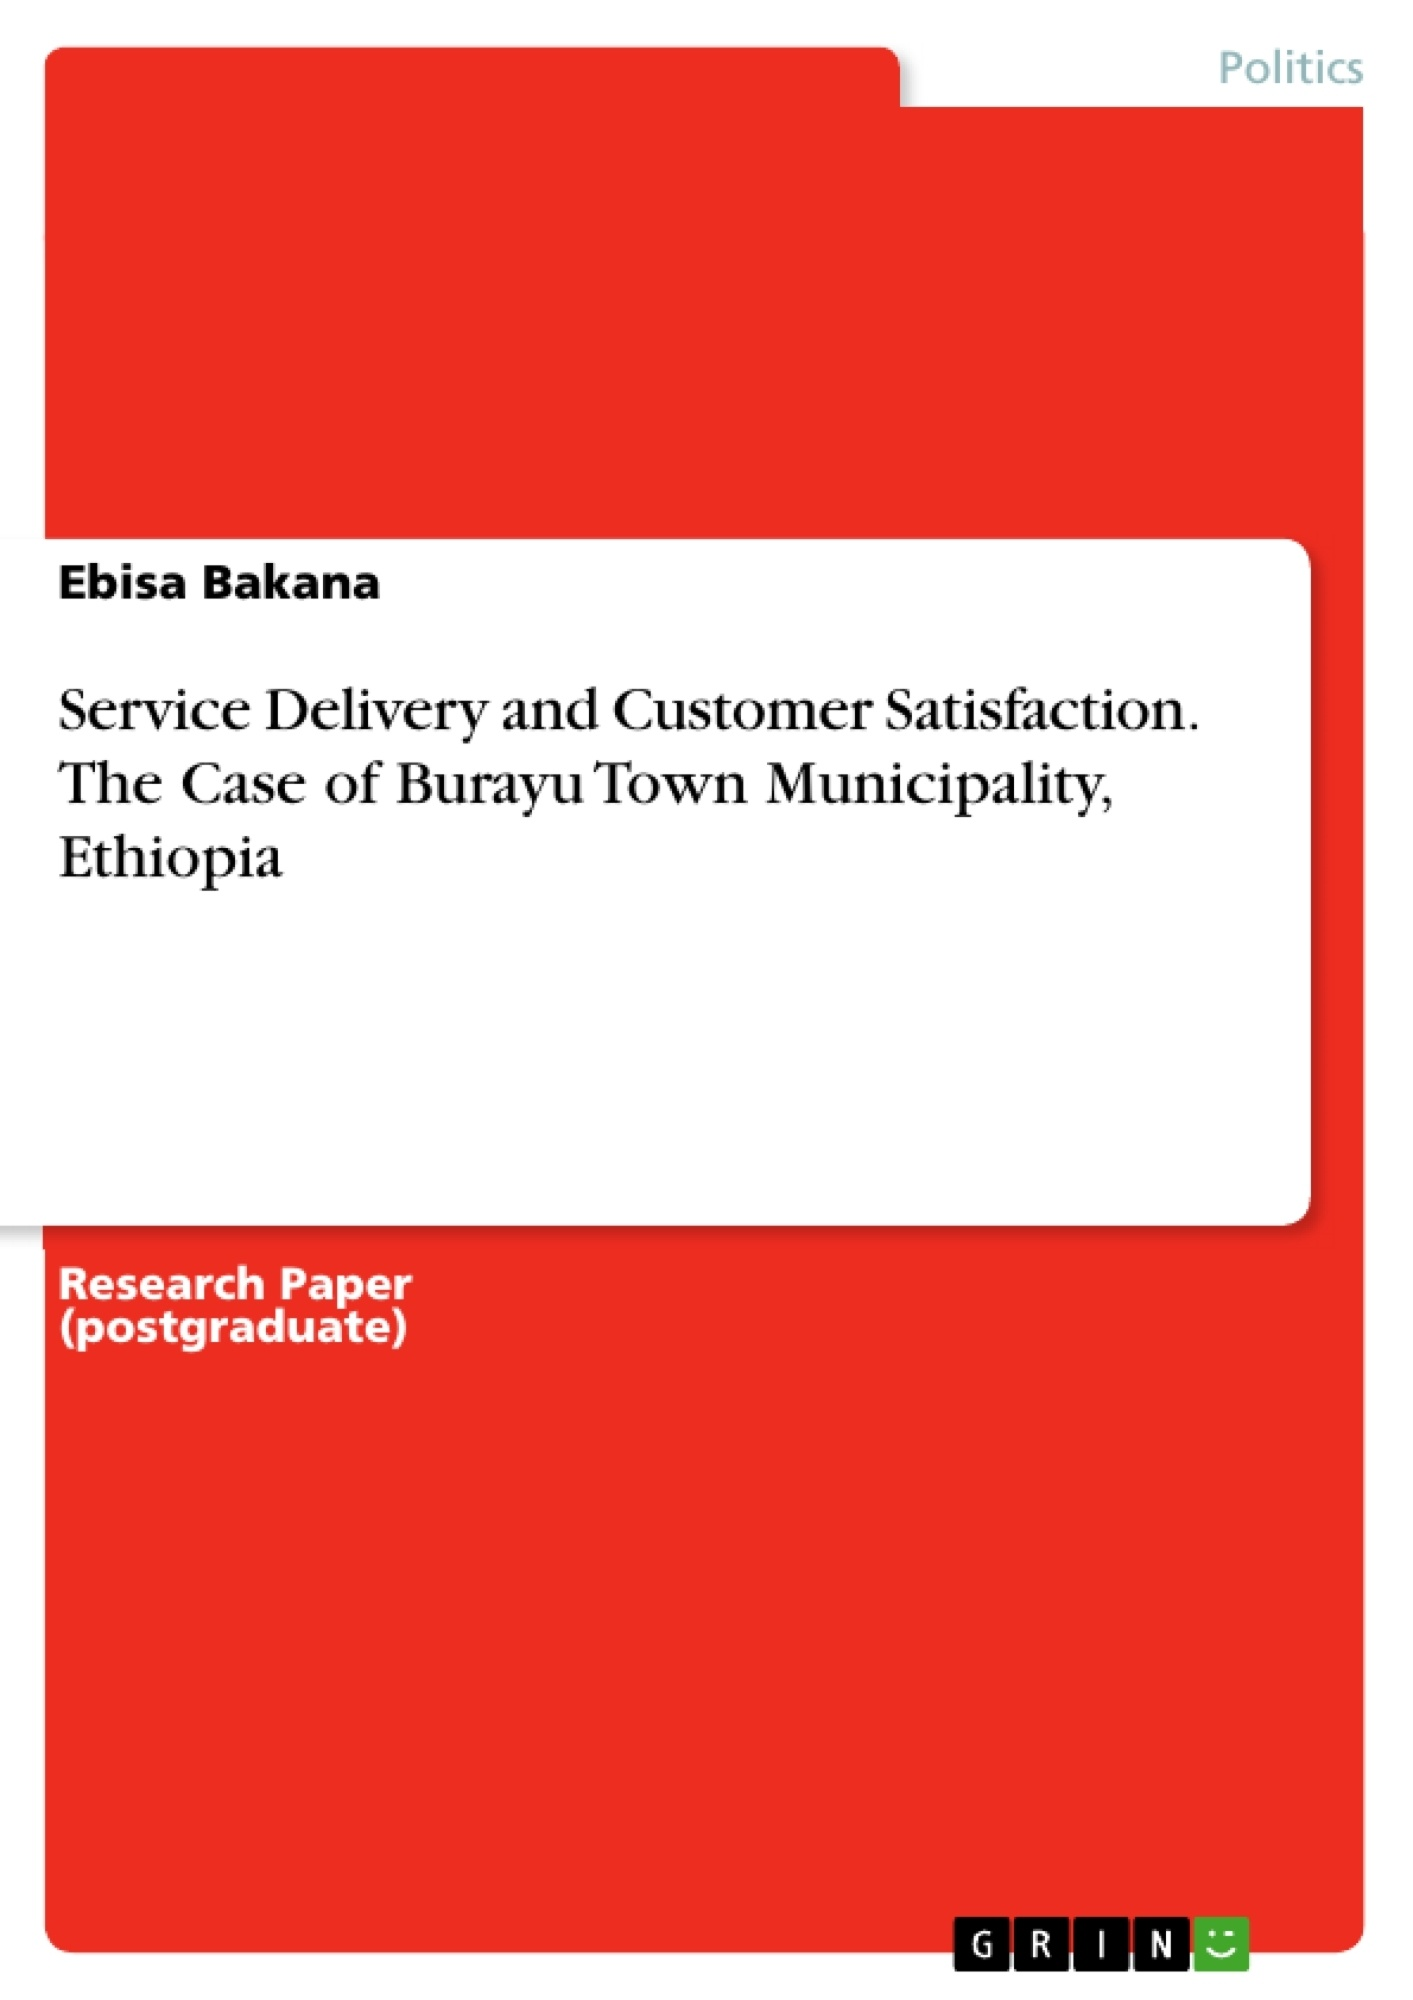 Title: Service Delivery and Customer Satisfaction. The Case of Burayu Town Municipality, Ethiopia